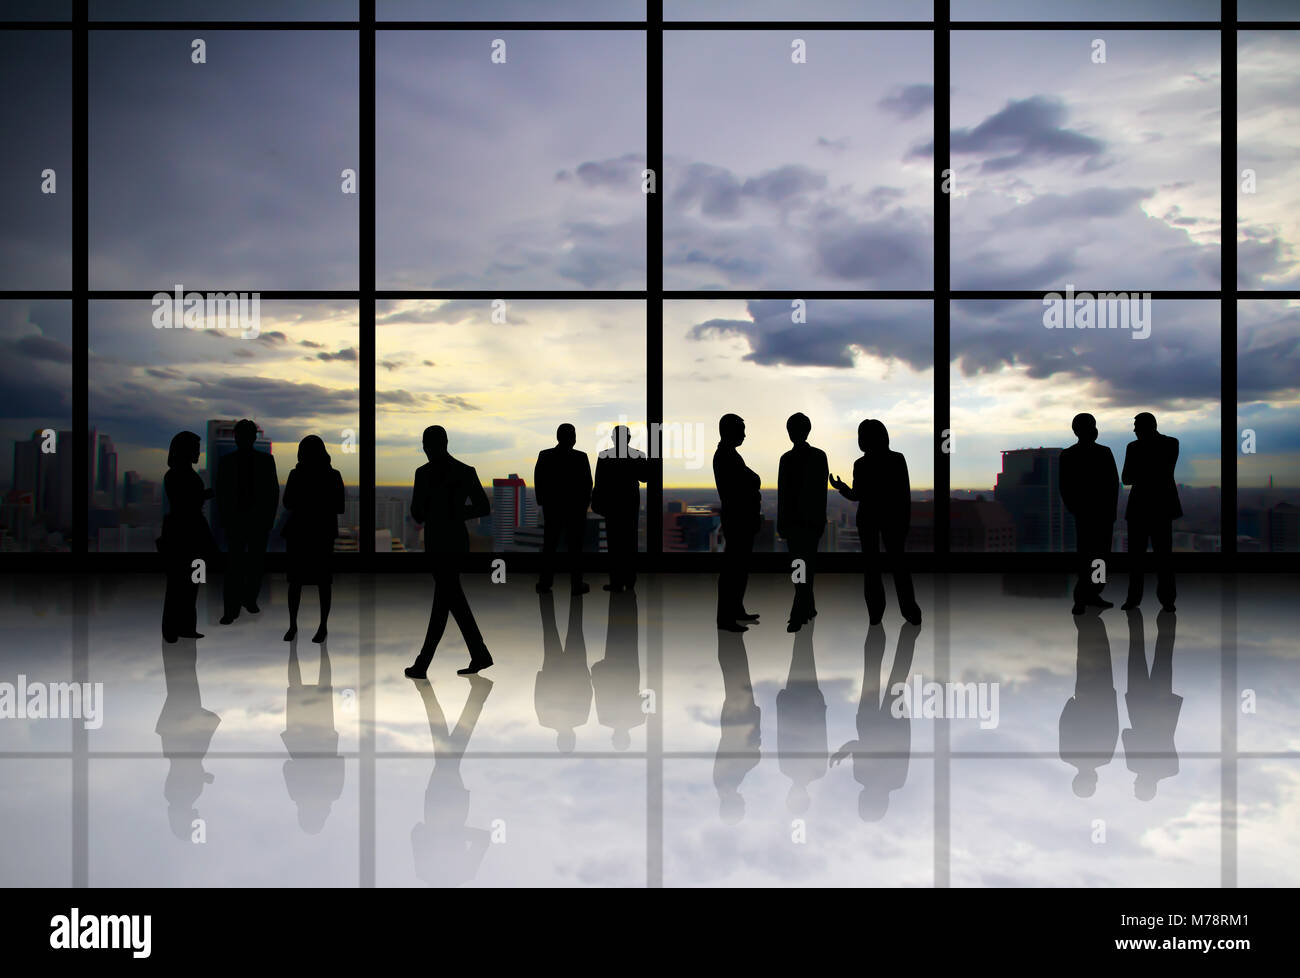 Sociability of the people in the organization. - Stock Image